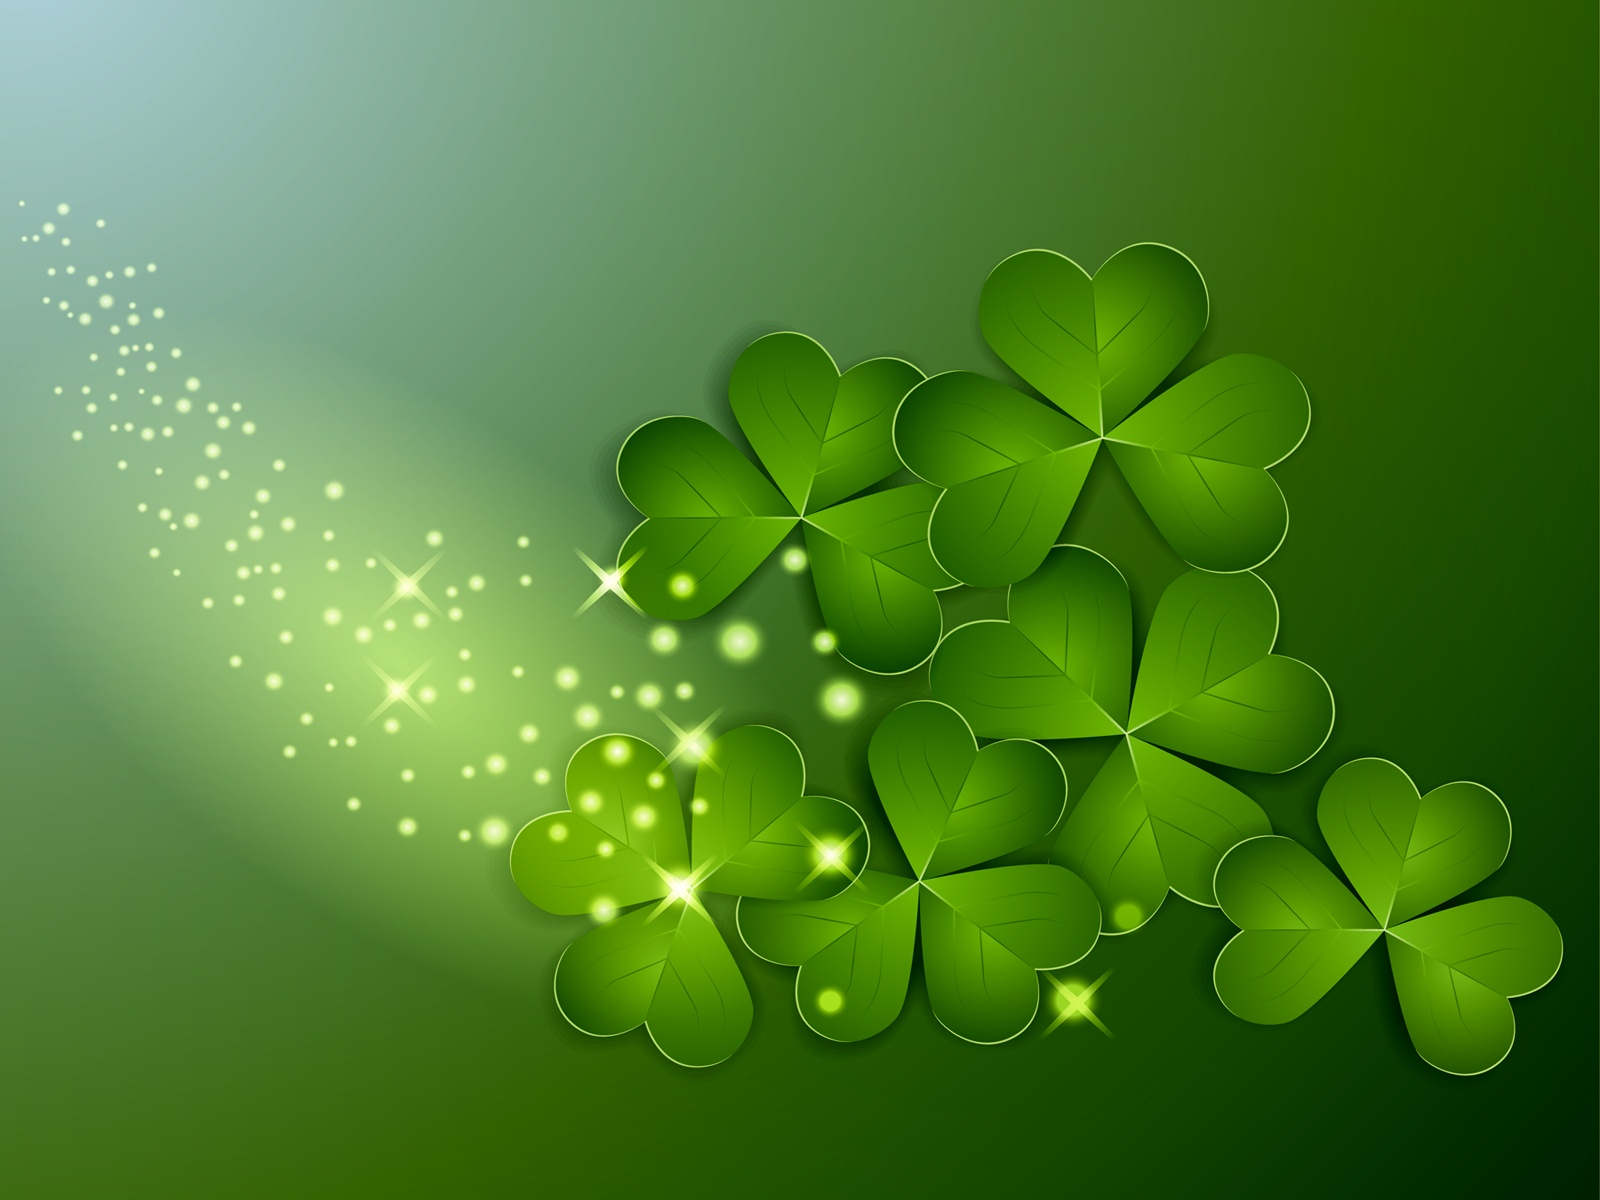 Ireland Flag Wallpapers Android Apps On Google Play 1600x1200